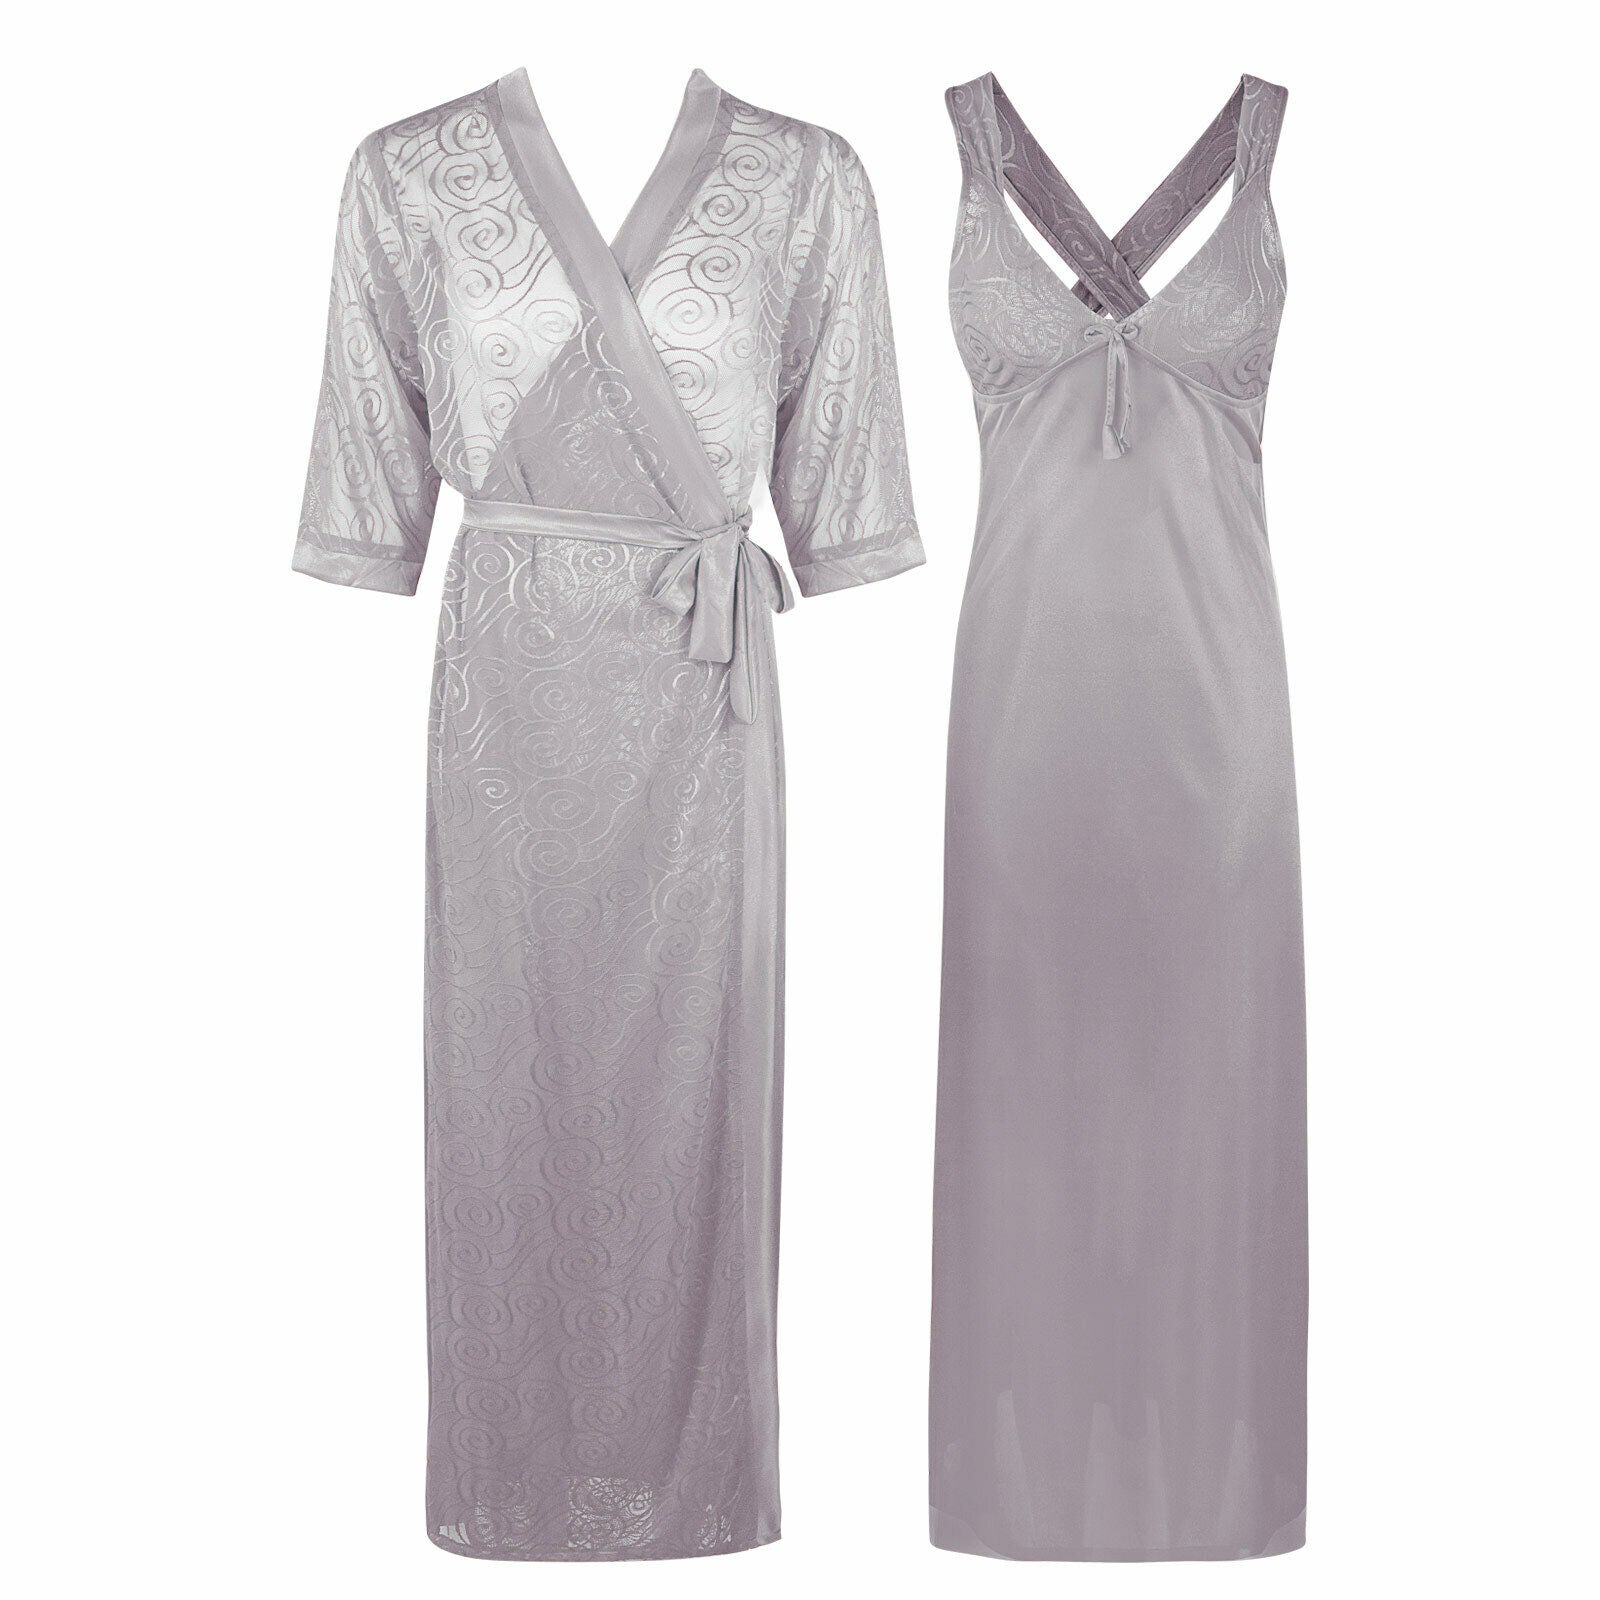 Sexy Cross Back 2 Piece Satin Long Nighty With Robe [colour]- Hautie UK, #Nightfashion | #Underfashion ONE, FREE SIZE 8 10 12 14 SILVER